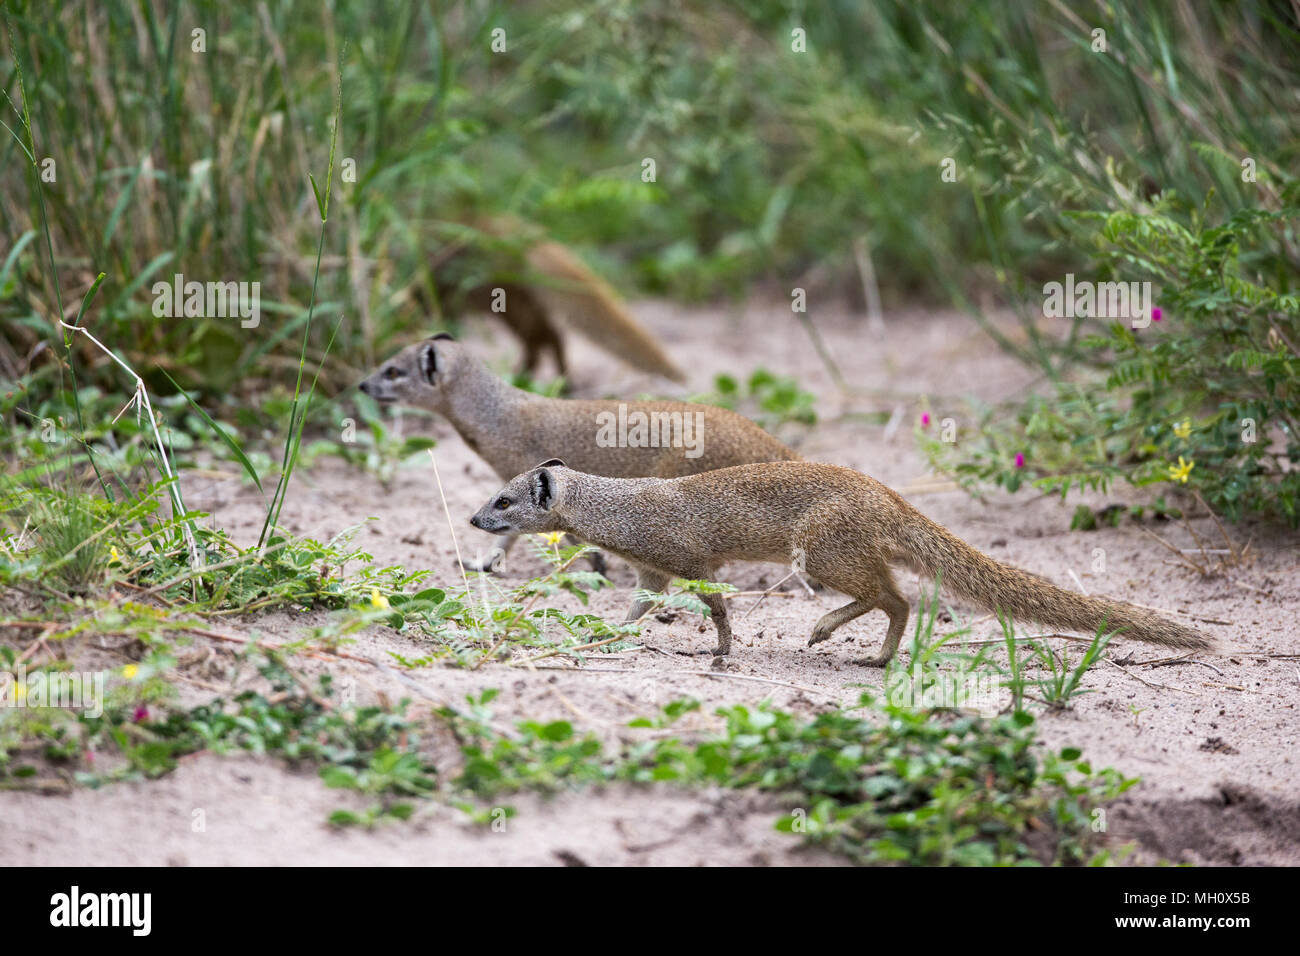 Yellow Mongoose, Red or Bushy-tailed Mongoose (Cynictus penicillata). Living in pairs and family groups, often forages alone. Okavango Delta, Botswana - Stock Image